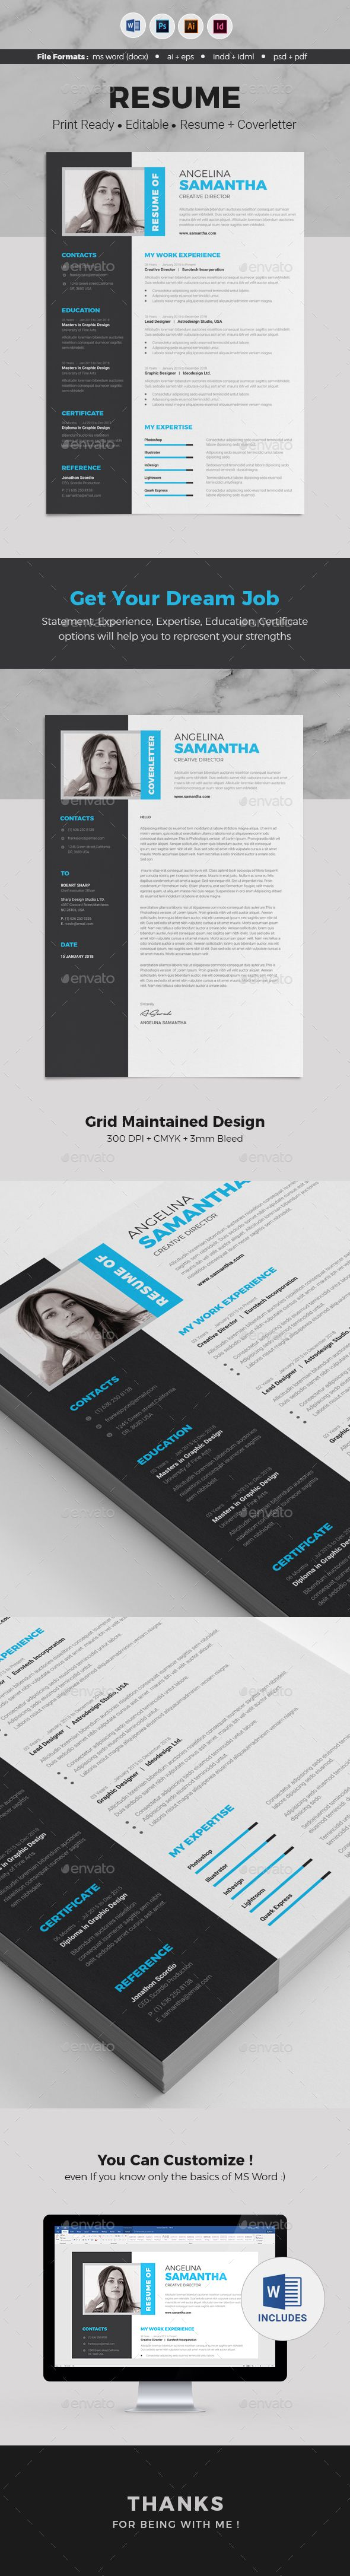 Resume Resumes Stationery Modern Clean and